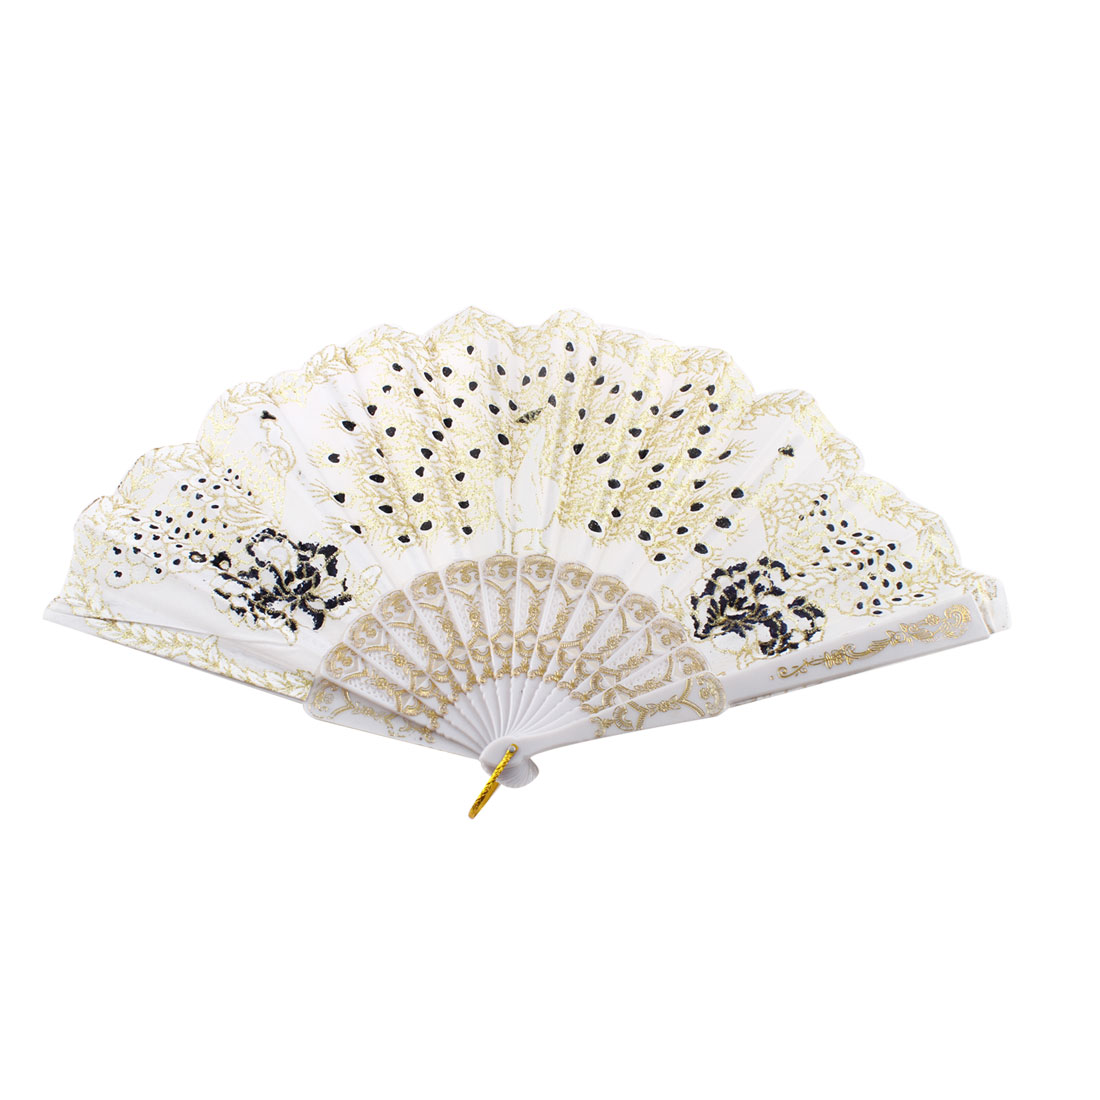 Chinese Style Glittery Powder Detail Peacock Print Folded Hand Fan White